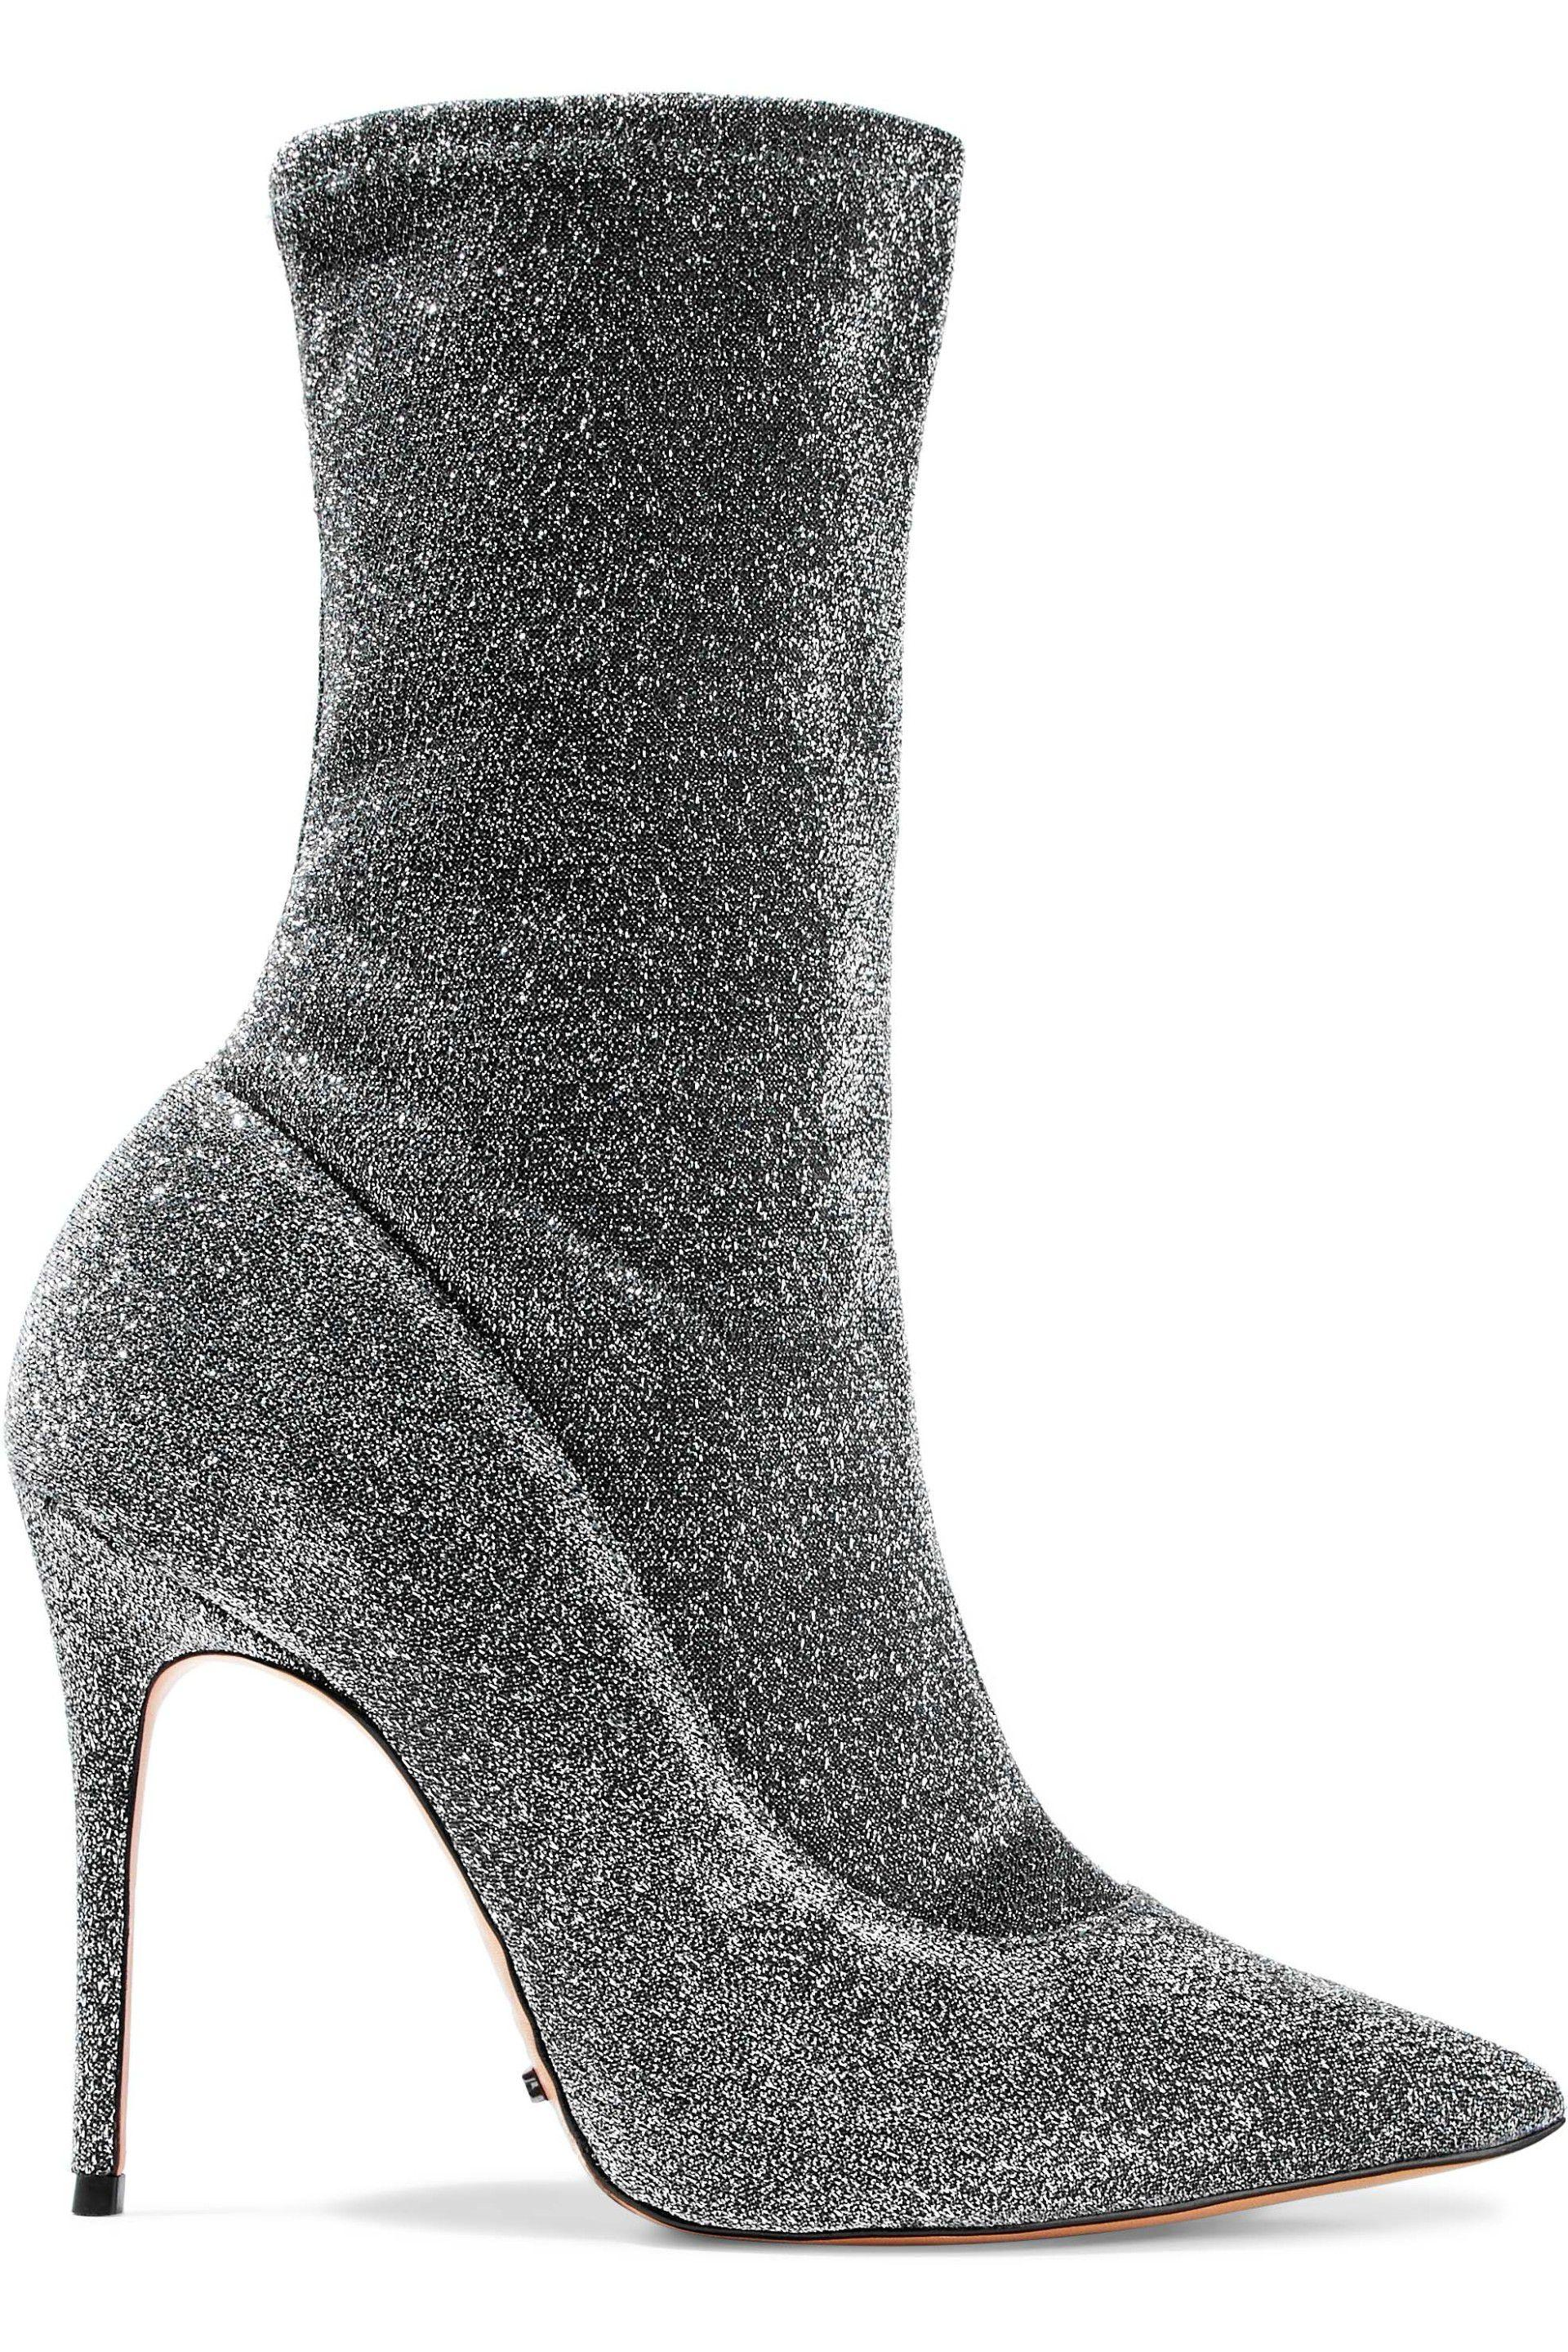 a39df3fff4a9 Schutz. Women s Woman Mislane Metallic Stretch-knit Ankle Boots Silver